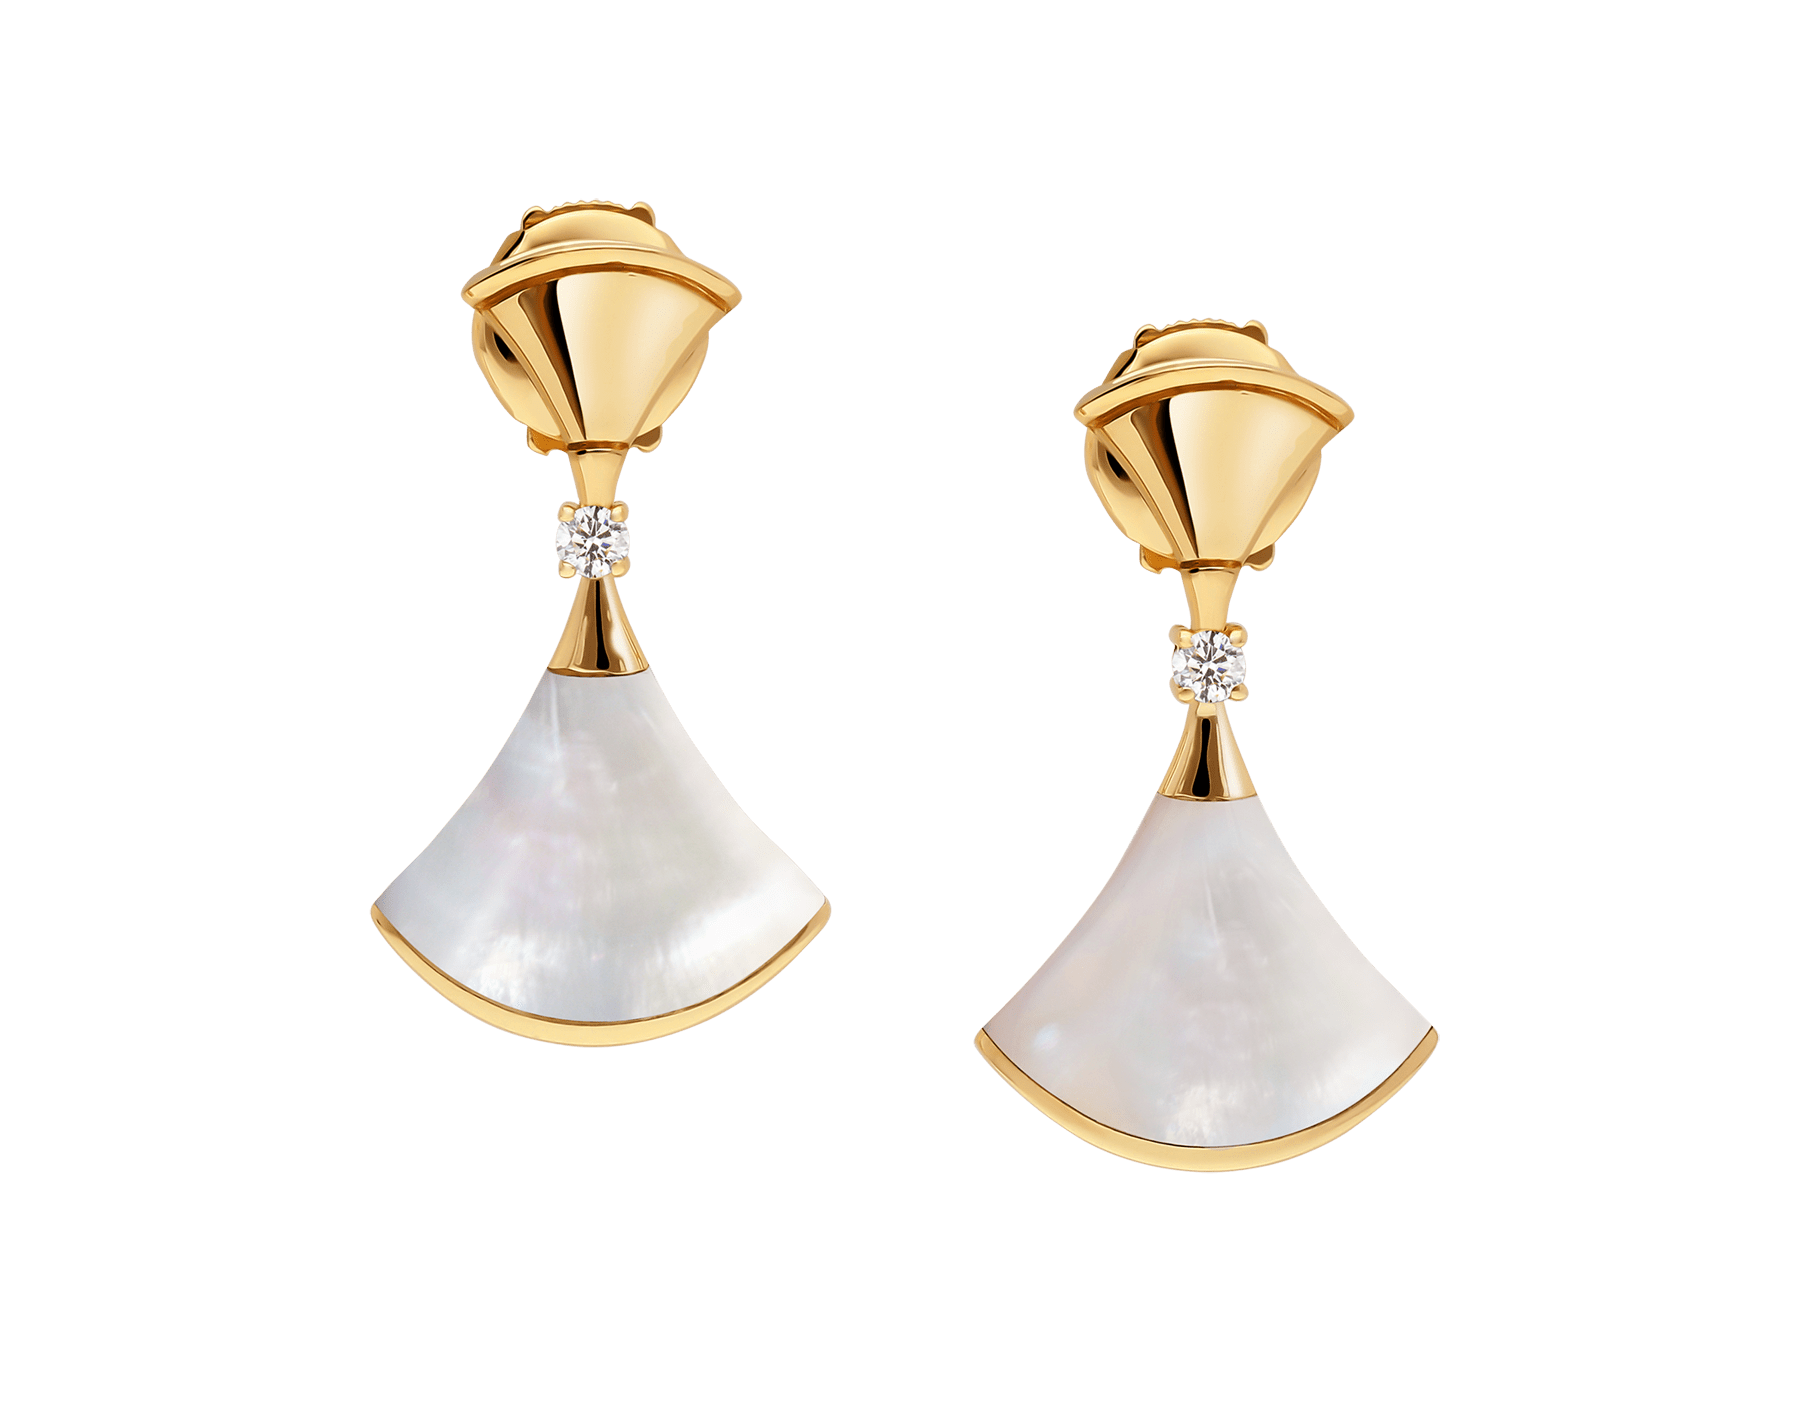 DIVAS' DREAM 18 kt yellow gold earrings set with mother-of-pearl elements and diamonds 357513 image 1